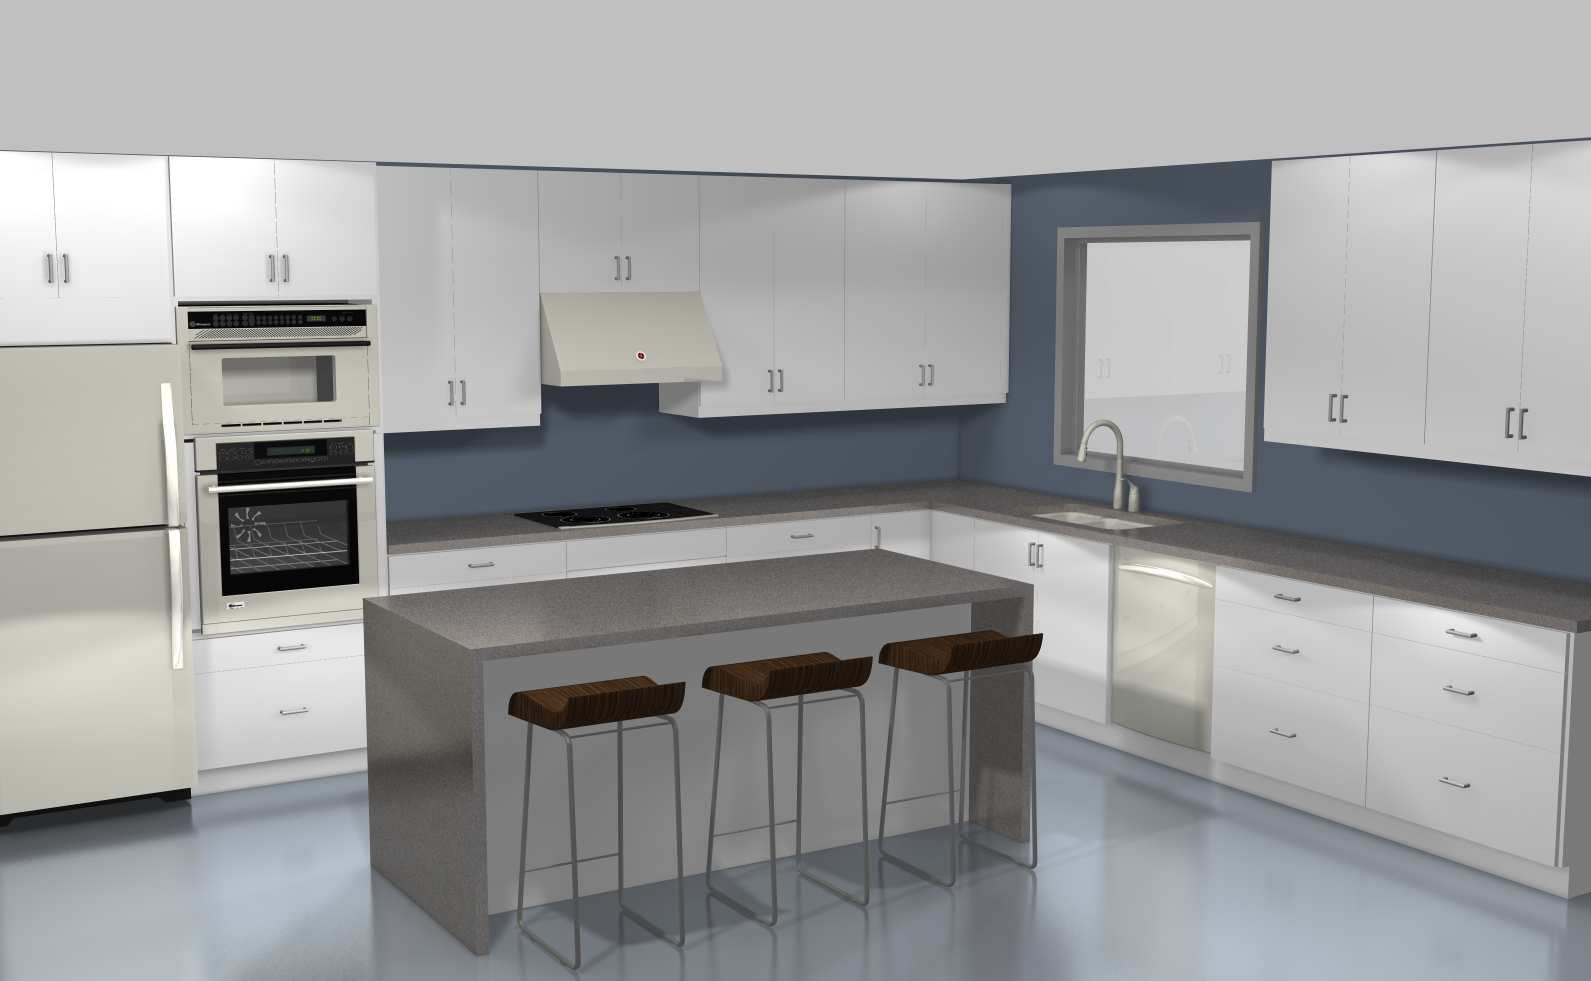 How Is IKD's IKEA Kitchen Design Better Than The Home Planner?